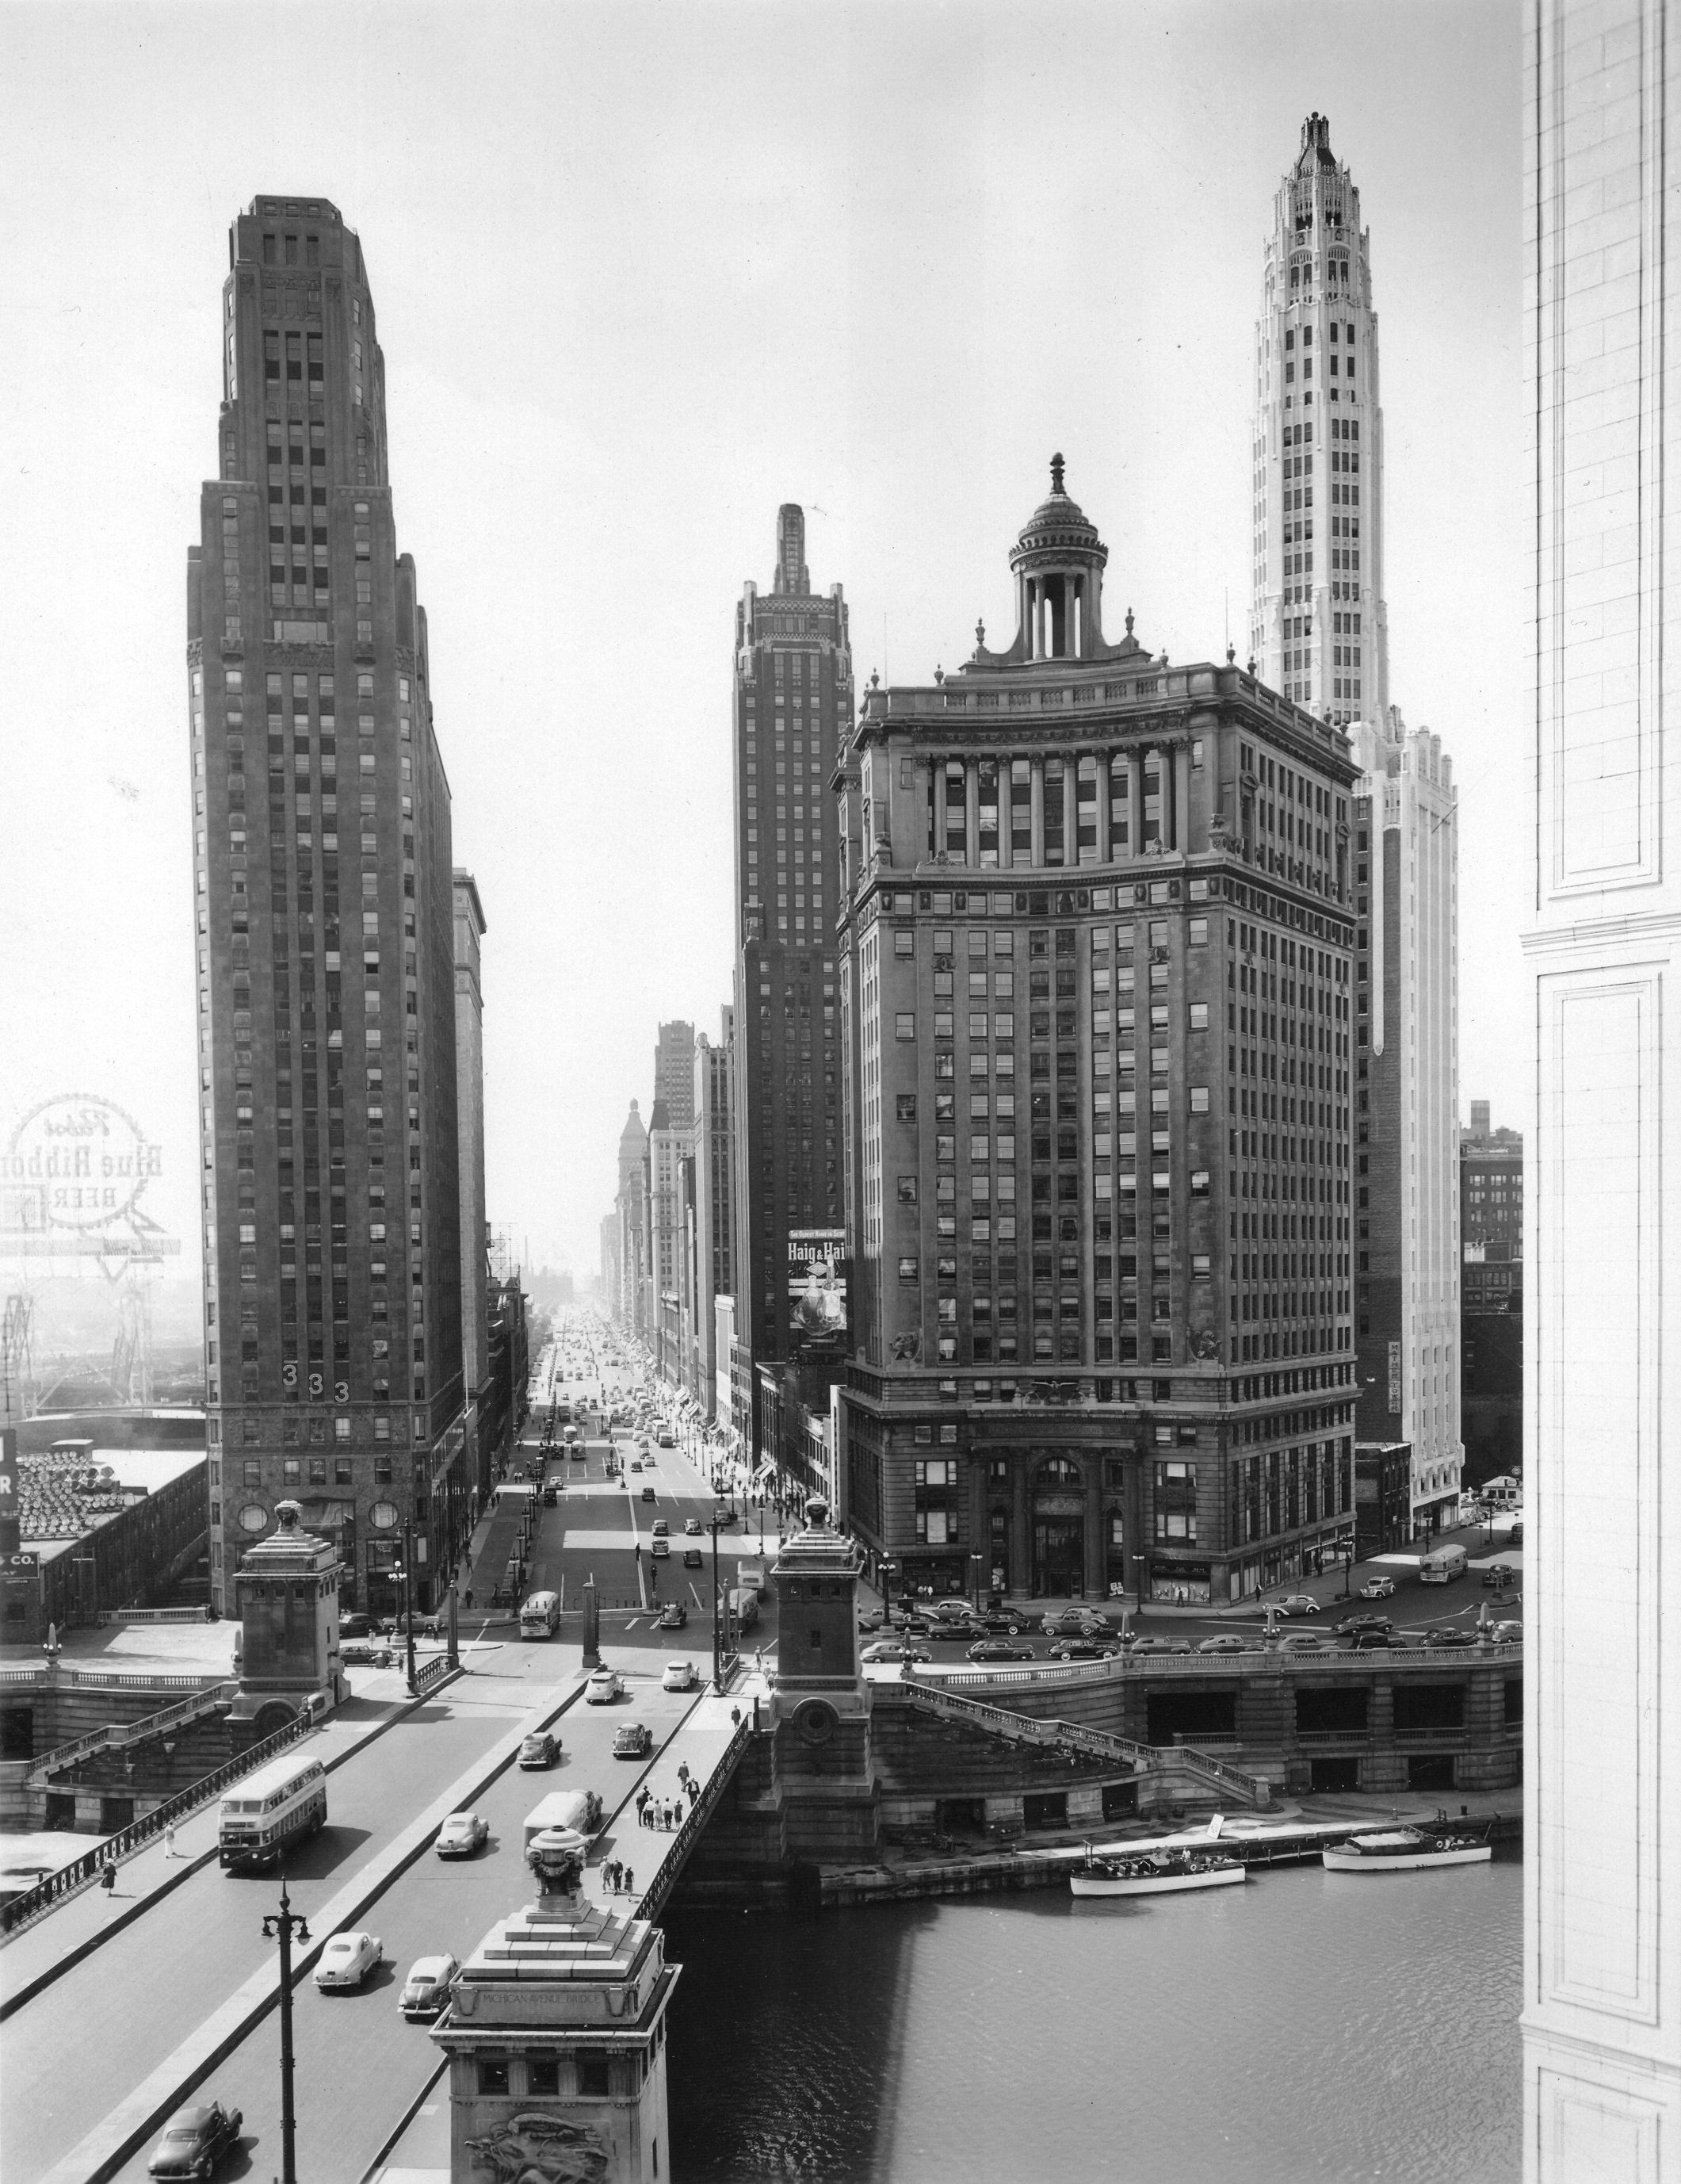 FileMichigan Ave Looking South Chicago 6 20 1945jpg